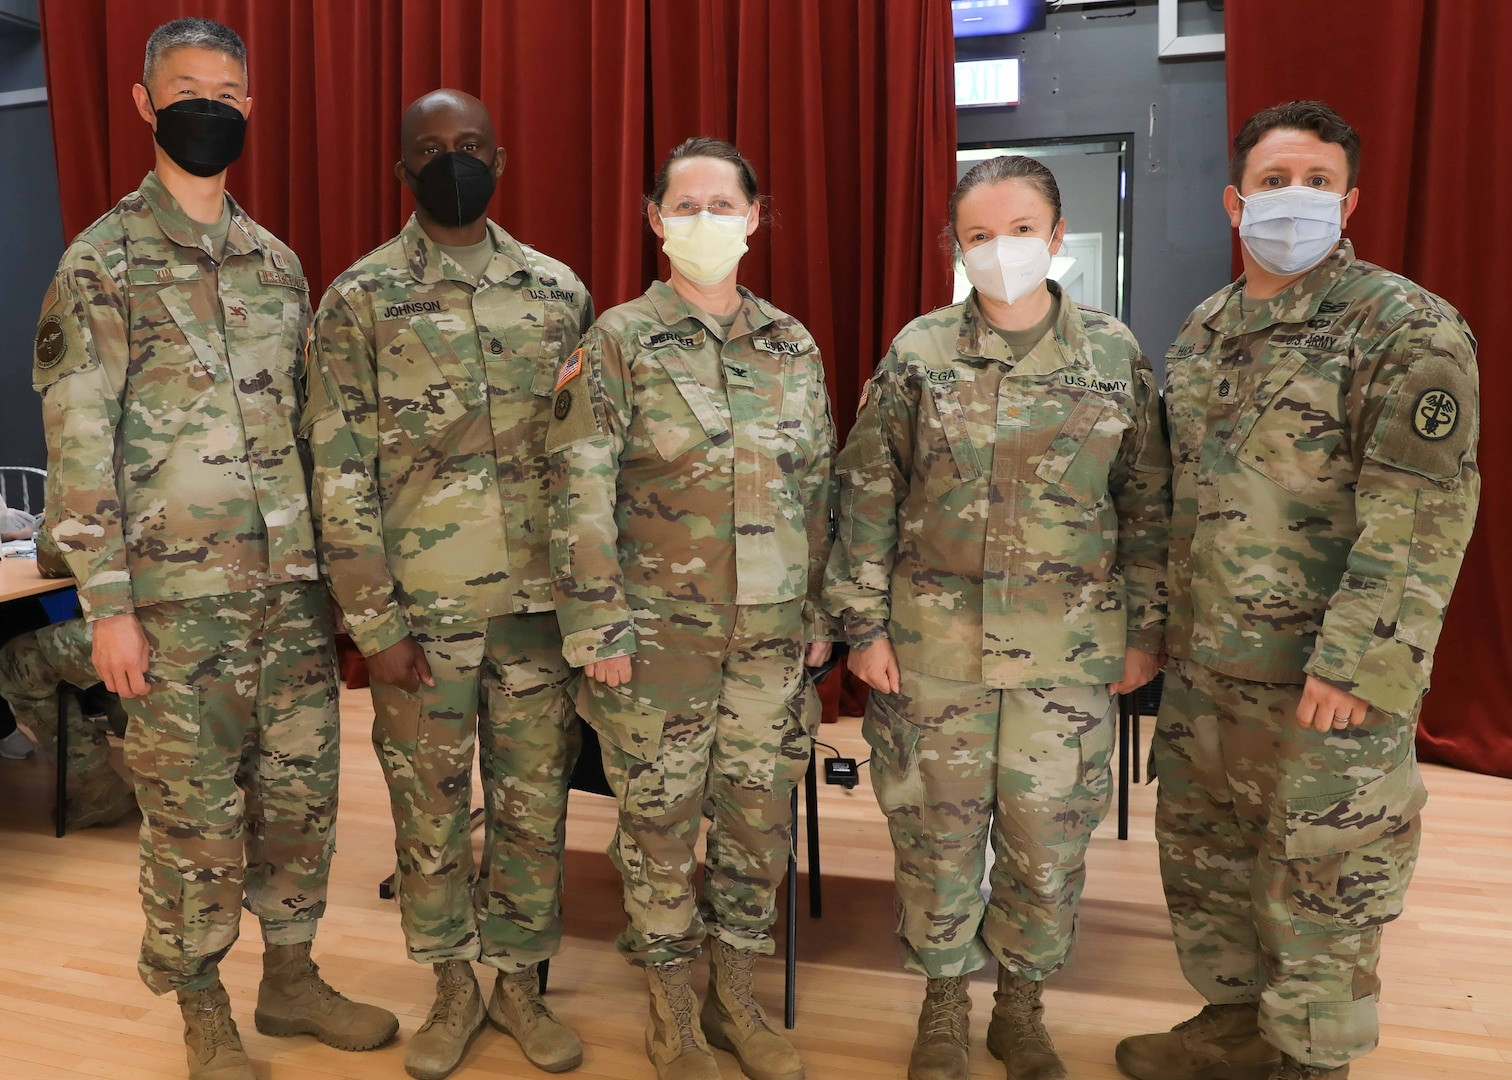 Wisconsin Army reserve unit aids vaccination efforts overseas